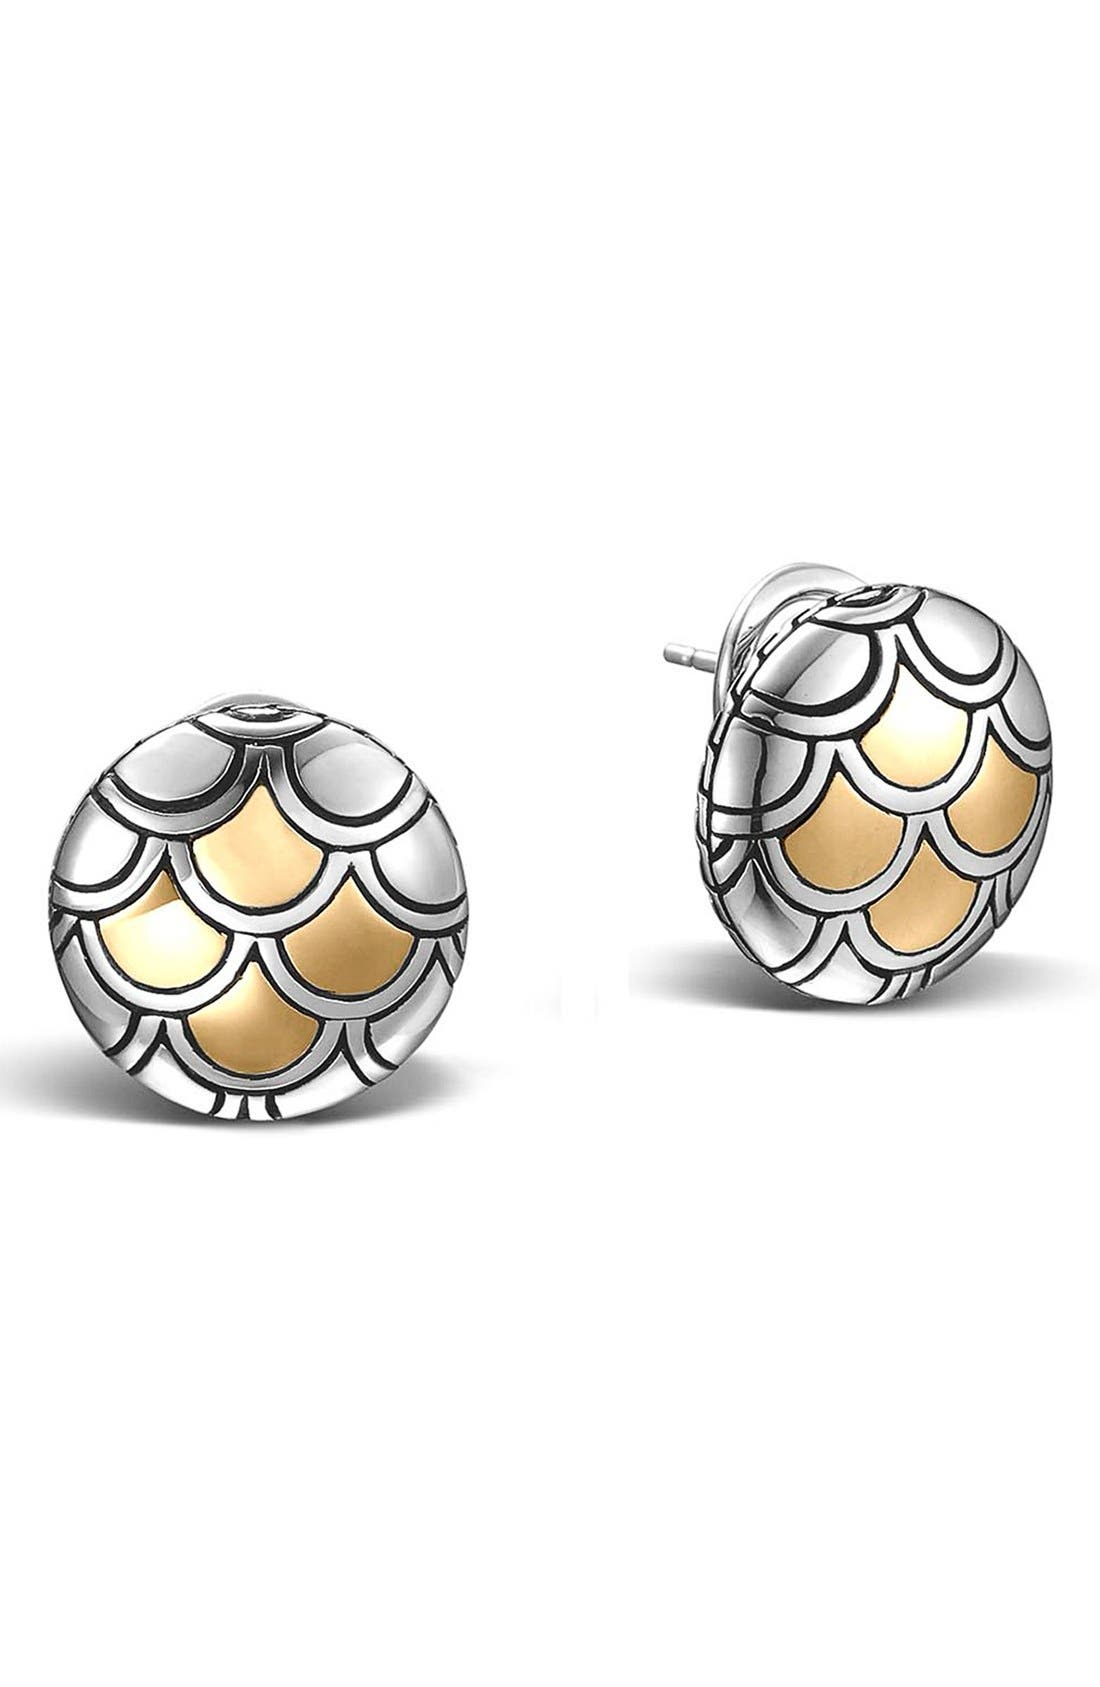 'Legends' Scale Stud Earrings,                         Main,                         color, SILVER/ GOLD